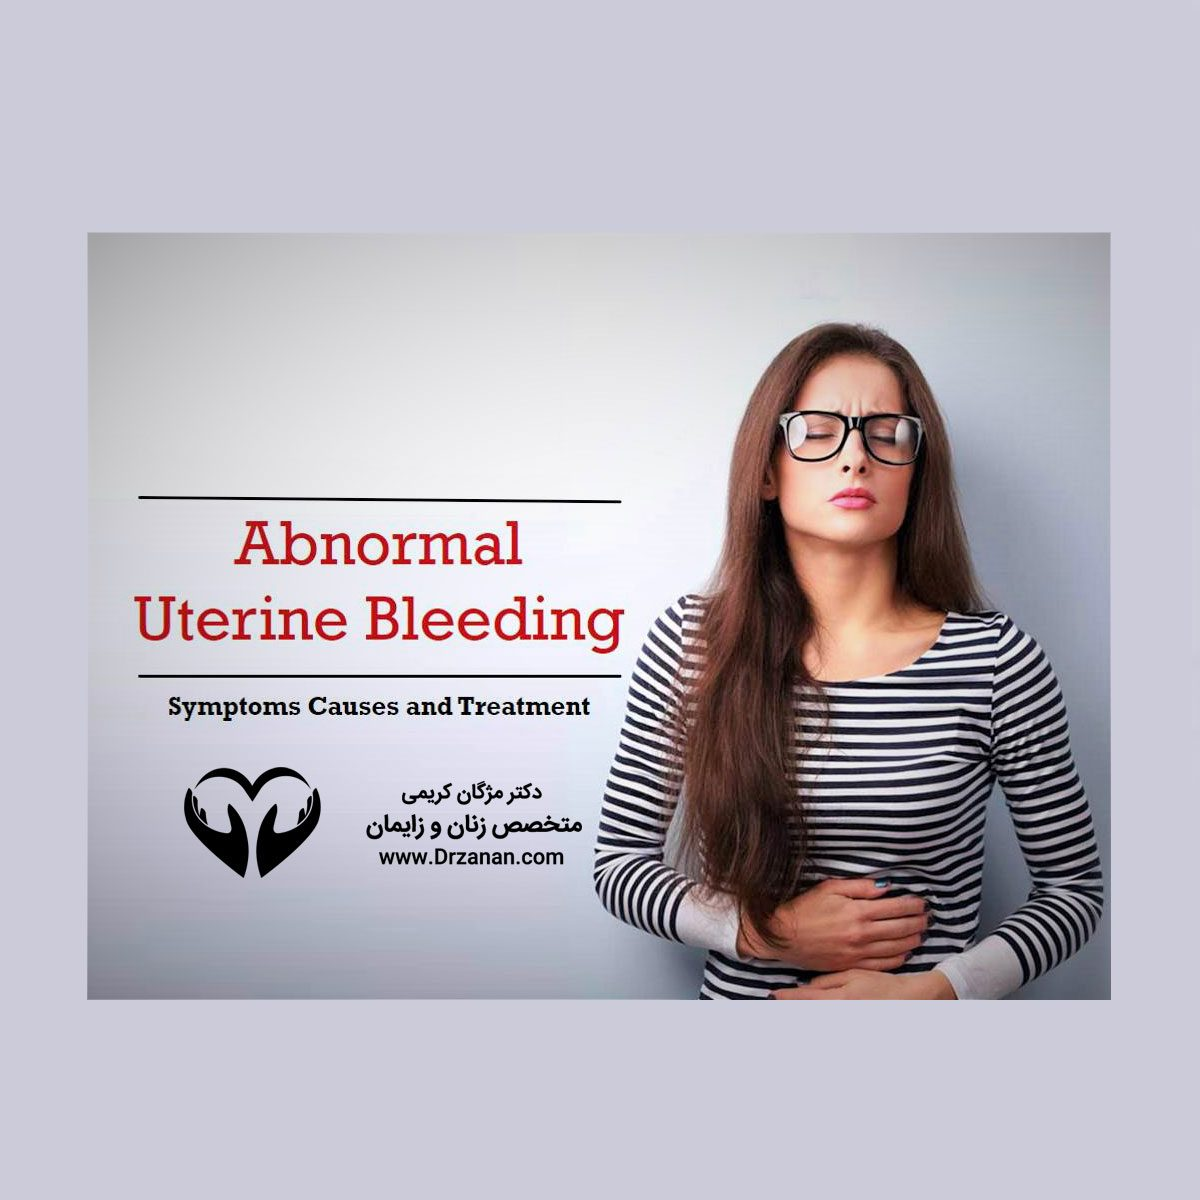 everything-about-uterine-bleeding-1200x1200.jpg